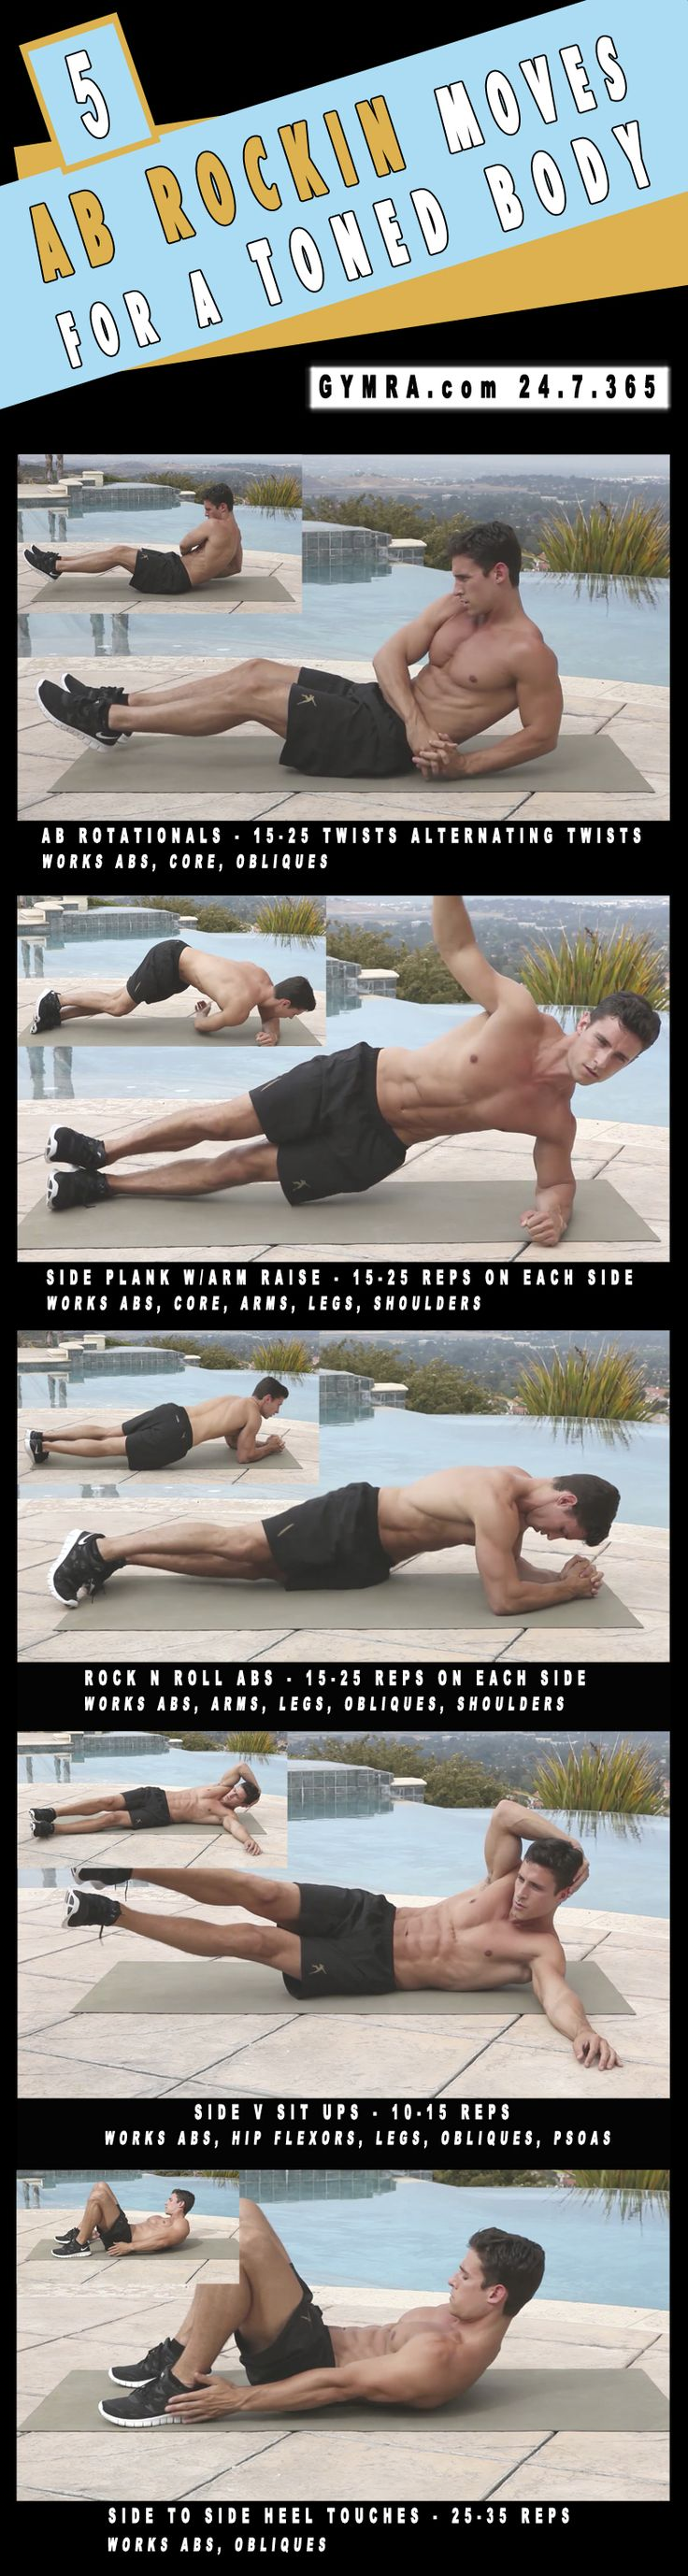 Abs Workout. Do each move for a minute with 15-45 seconds rest in between sets twice. Total Body Workout. Warm up for 2 minutes, do the circuit 2-3 times. Transform yourself & Your life, get fit & healthy.